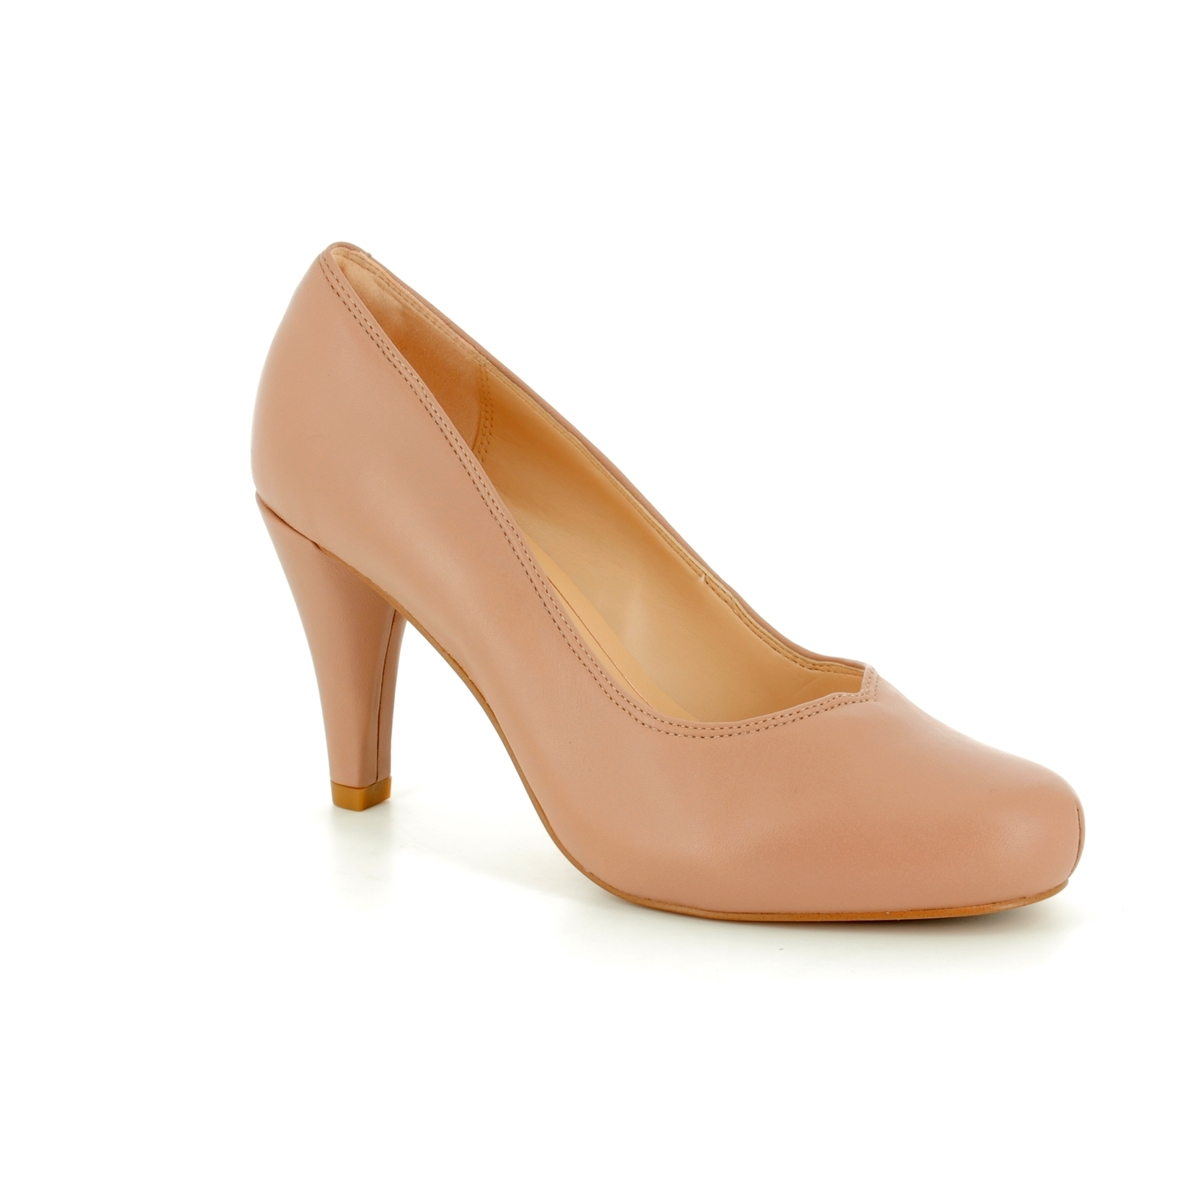 2b05a9ccdc45 Clarks High-heeled Shoes - Nude - 3226 64D DALIA ROSE